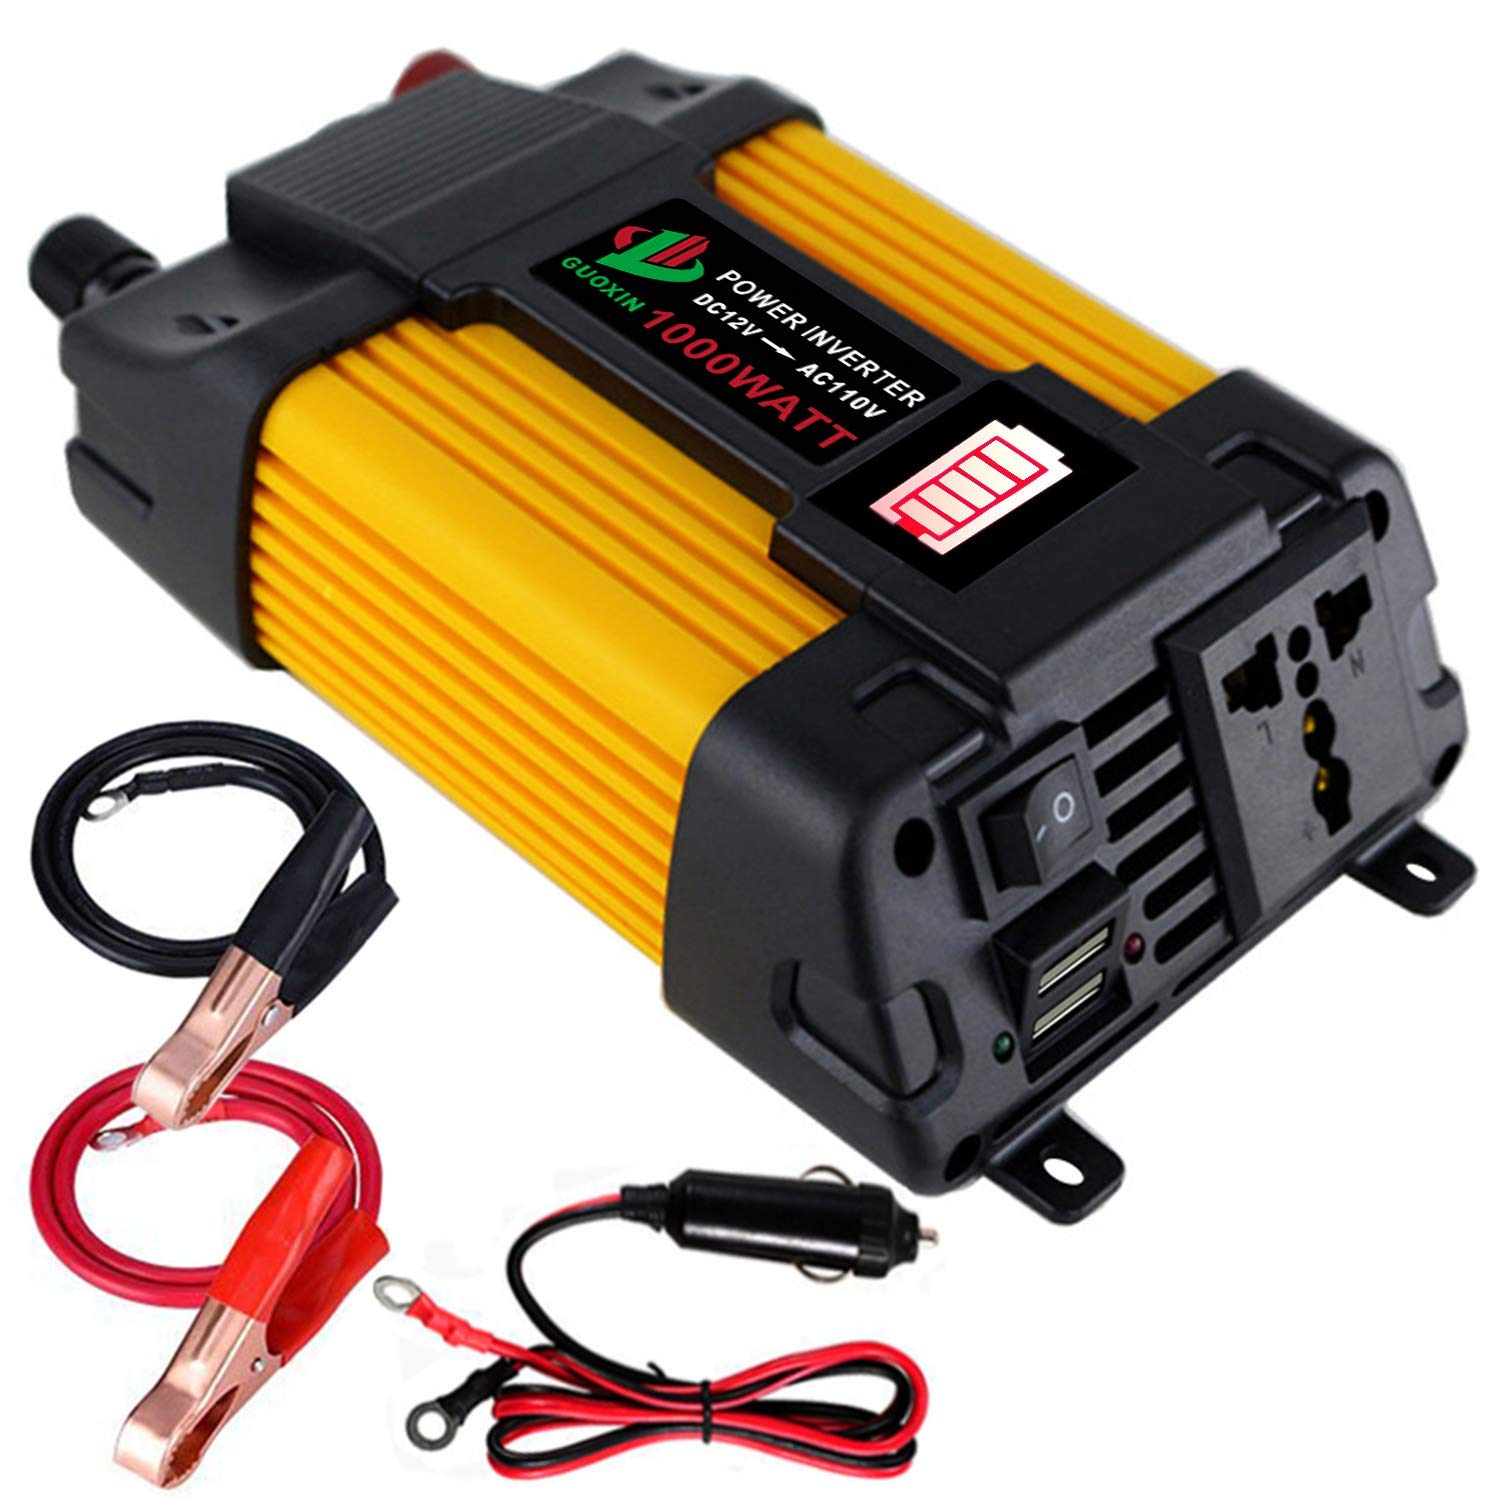 GUOXIN Car Power Inverter DC 12V to AC 110V 120V 1000W Dual USB 4.2A with Car Cigarette Lighter LED Battery Display and Battery Clip